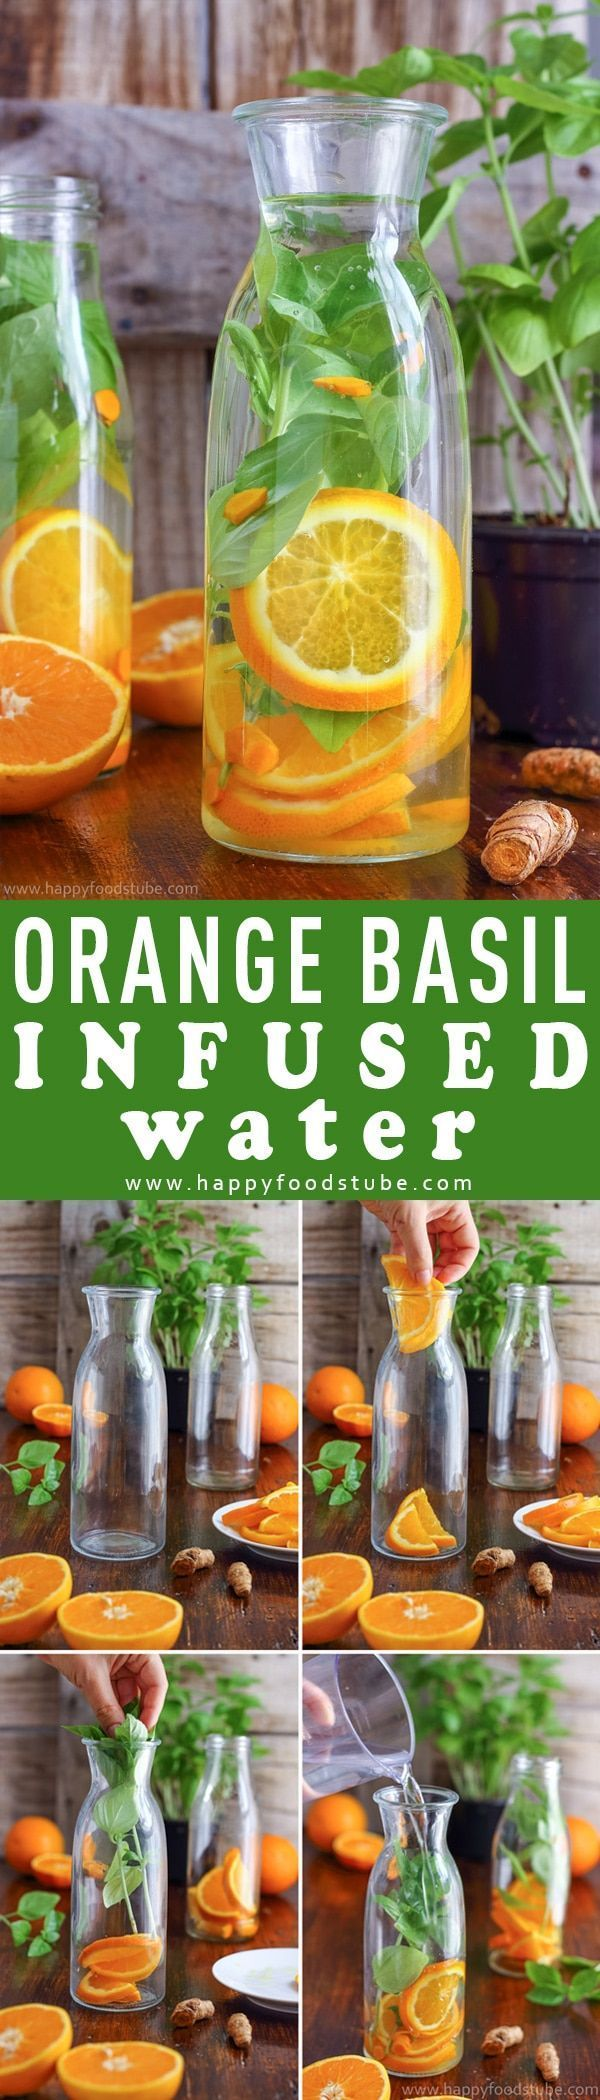 The 25 best 9 day cleanse ideas on pinterest isagenix 30 day this orange basil infused water is the perfect drink for hot summer days its refreshing tasty and easy to make stay hydrated with this healthy flavored malvernweather Image collections